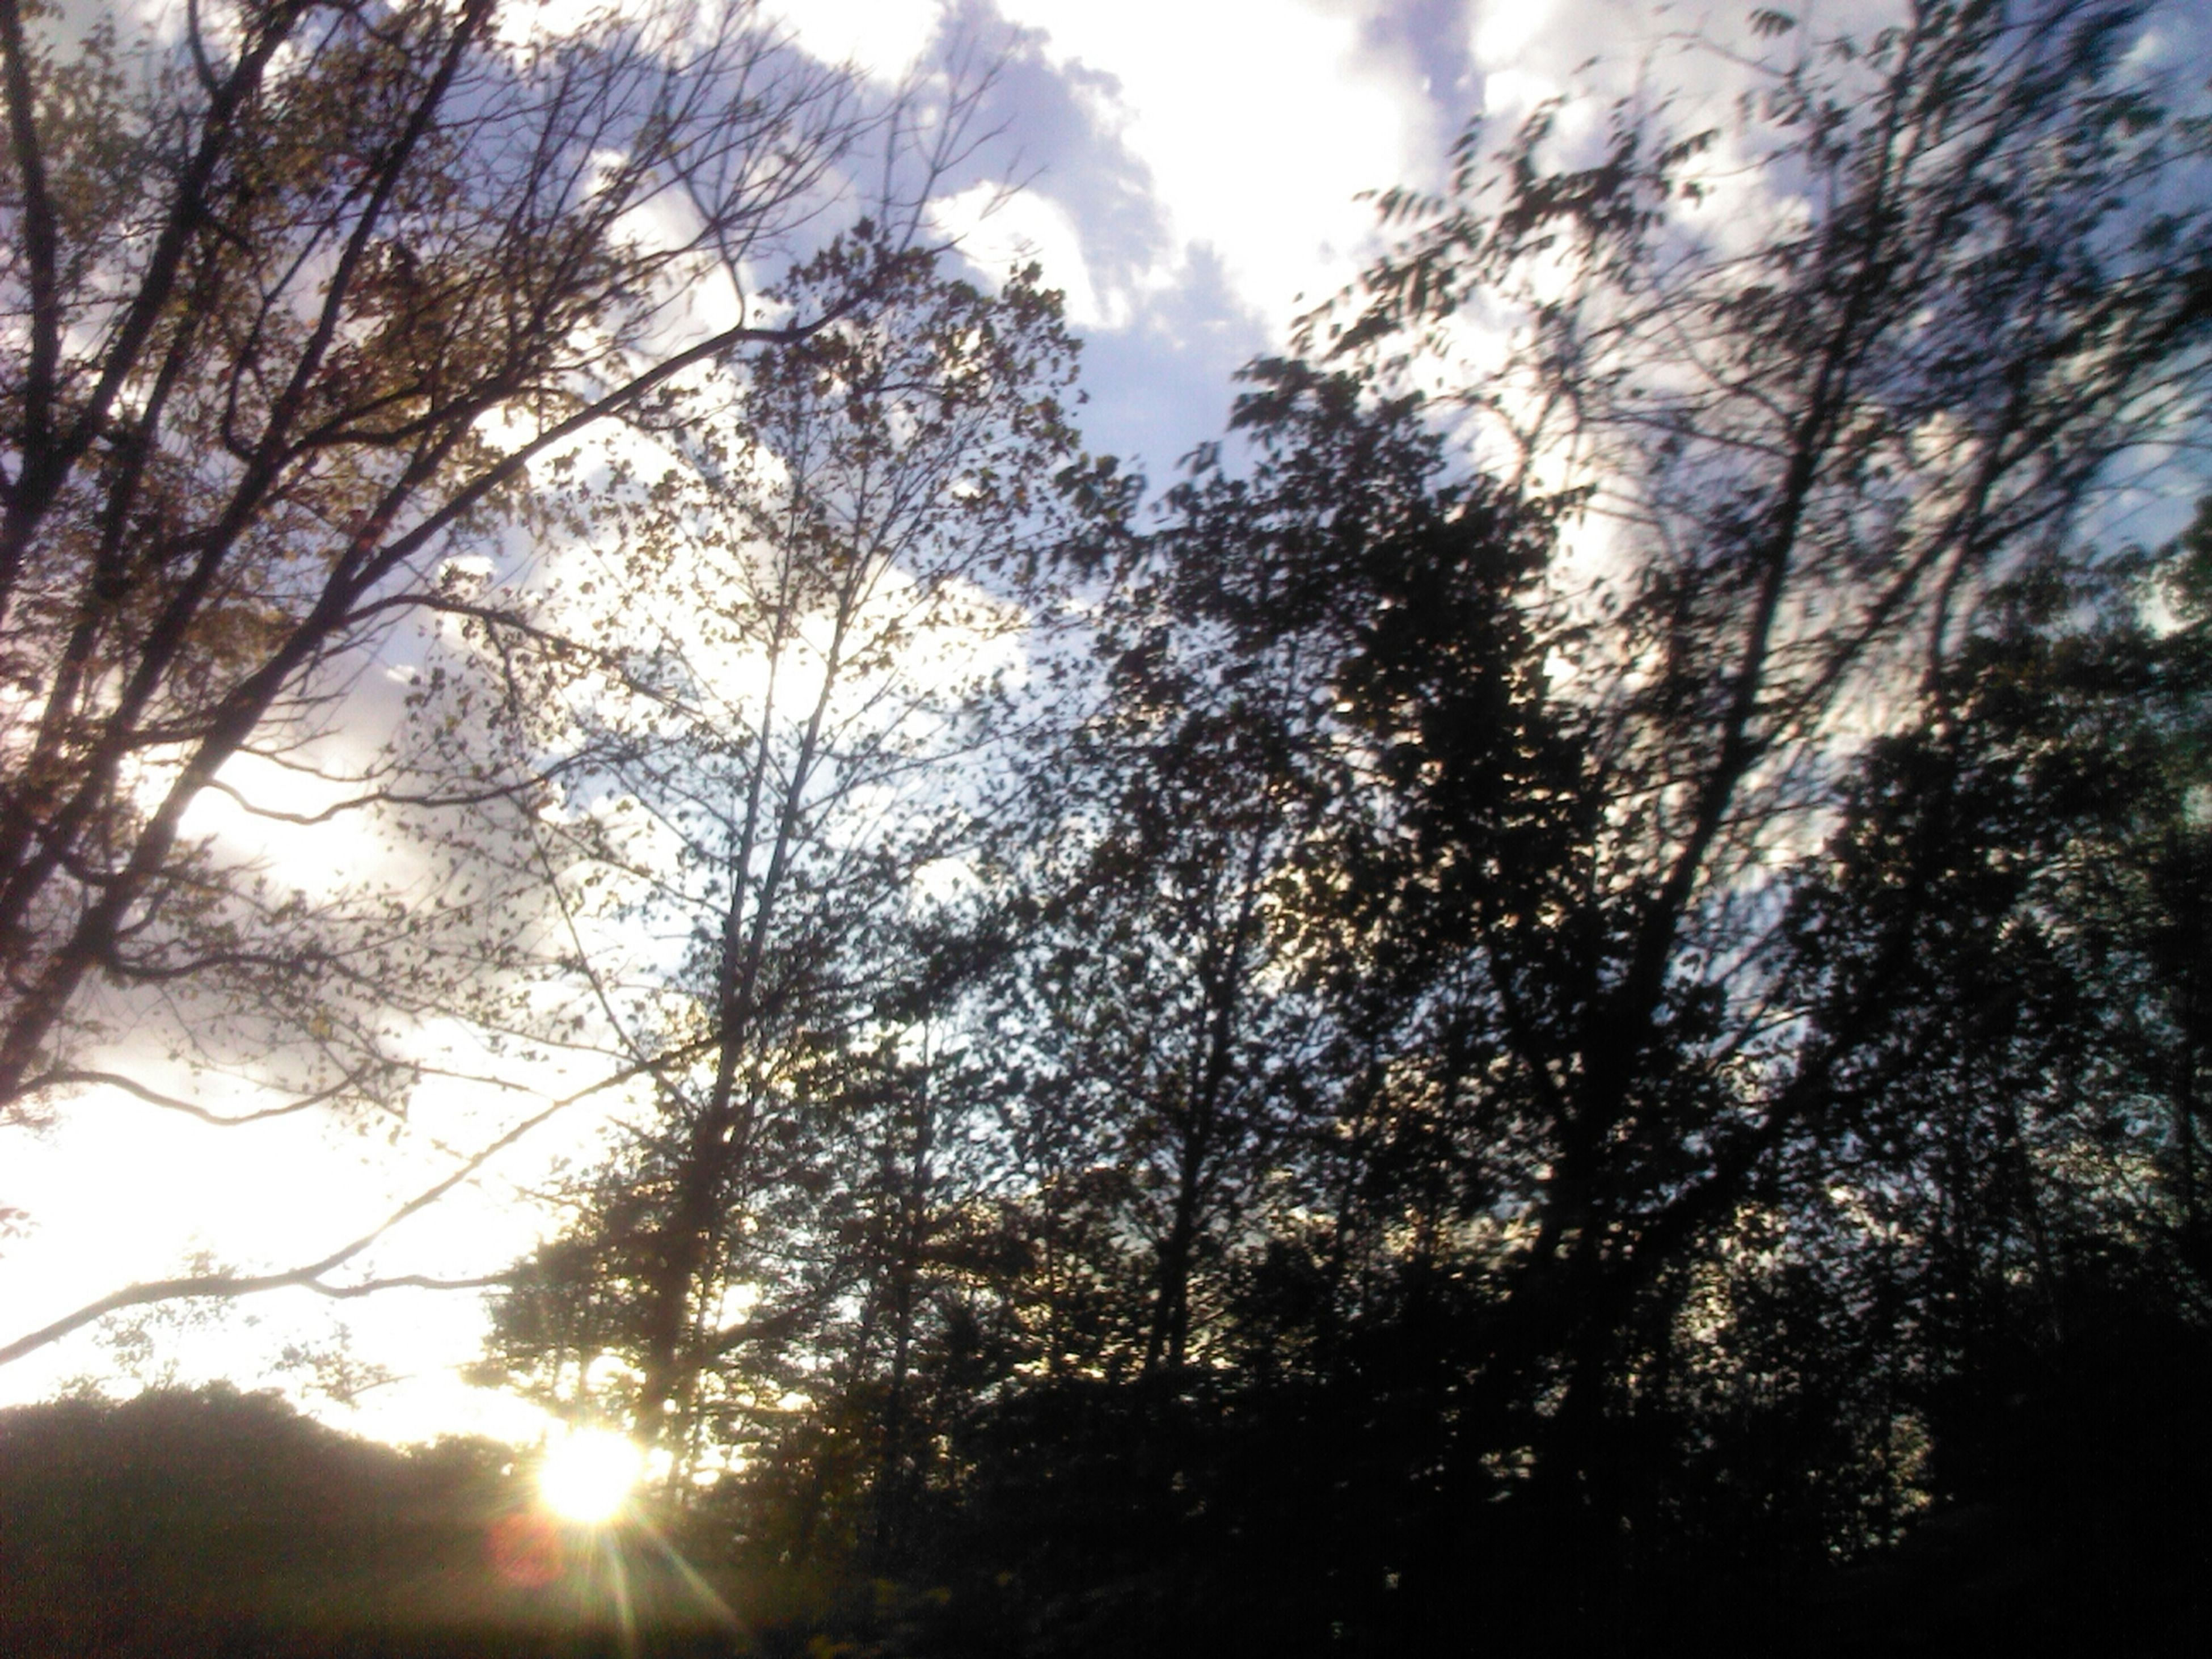 tree, low angle view, sun, tranquility, sunbeam, branch, silhouette, sky, beauty in nature, sunlight, nature, tranquil scene, growth, scenics, lens flare, forest, back lit, sunset, idyllic, outdoors